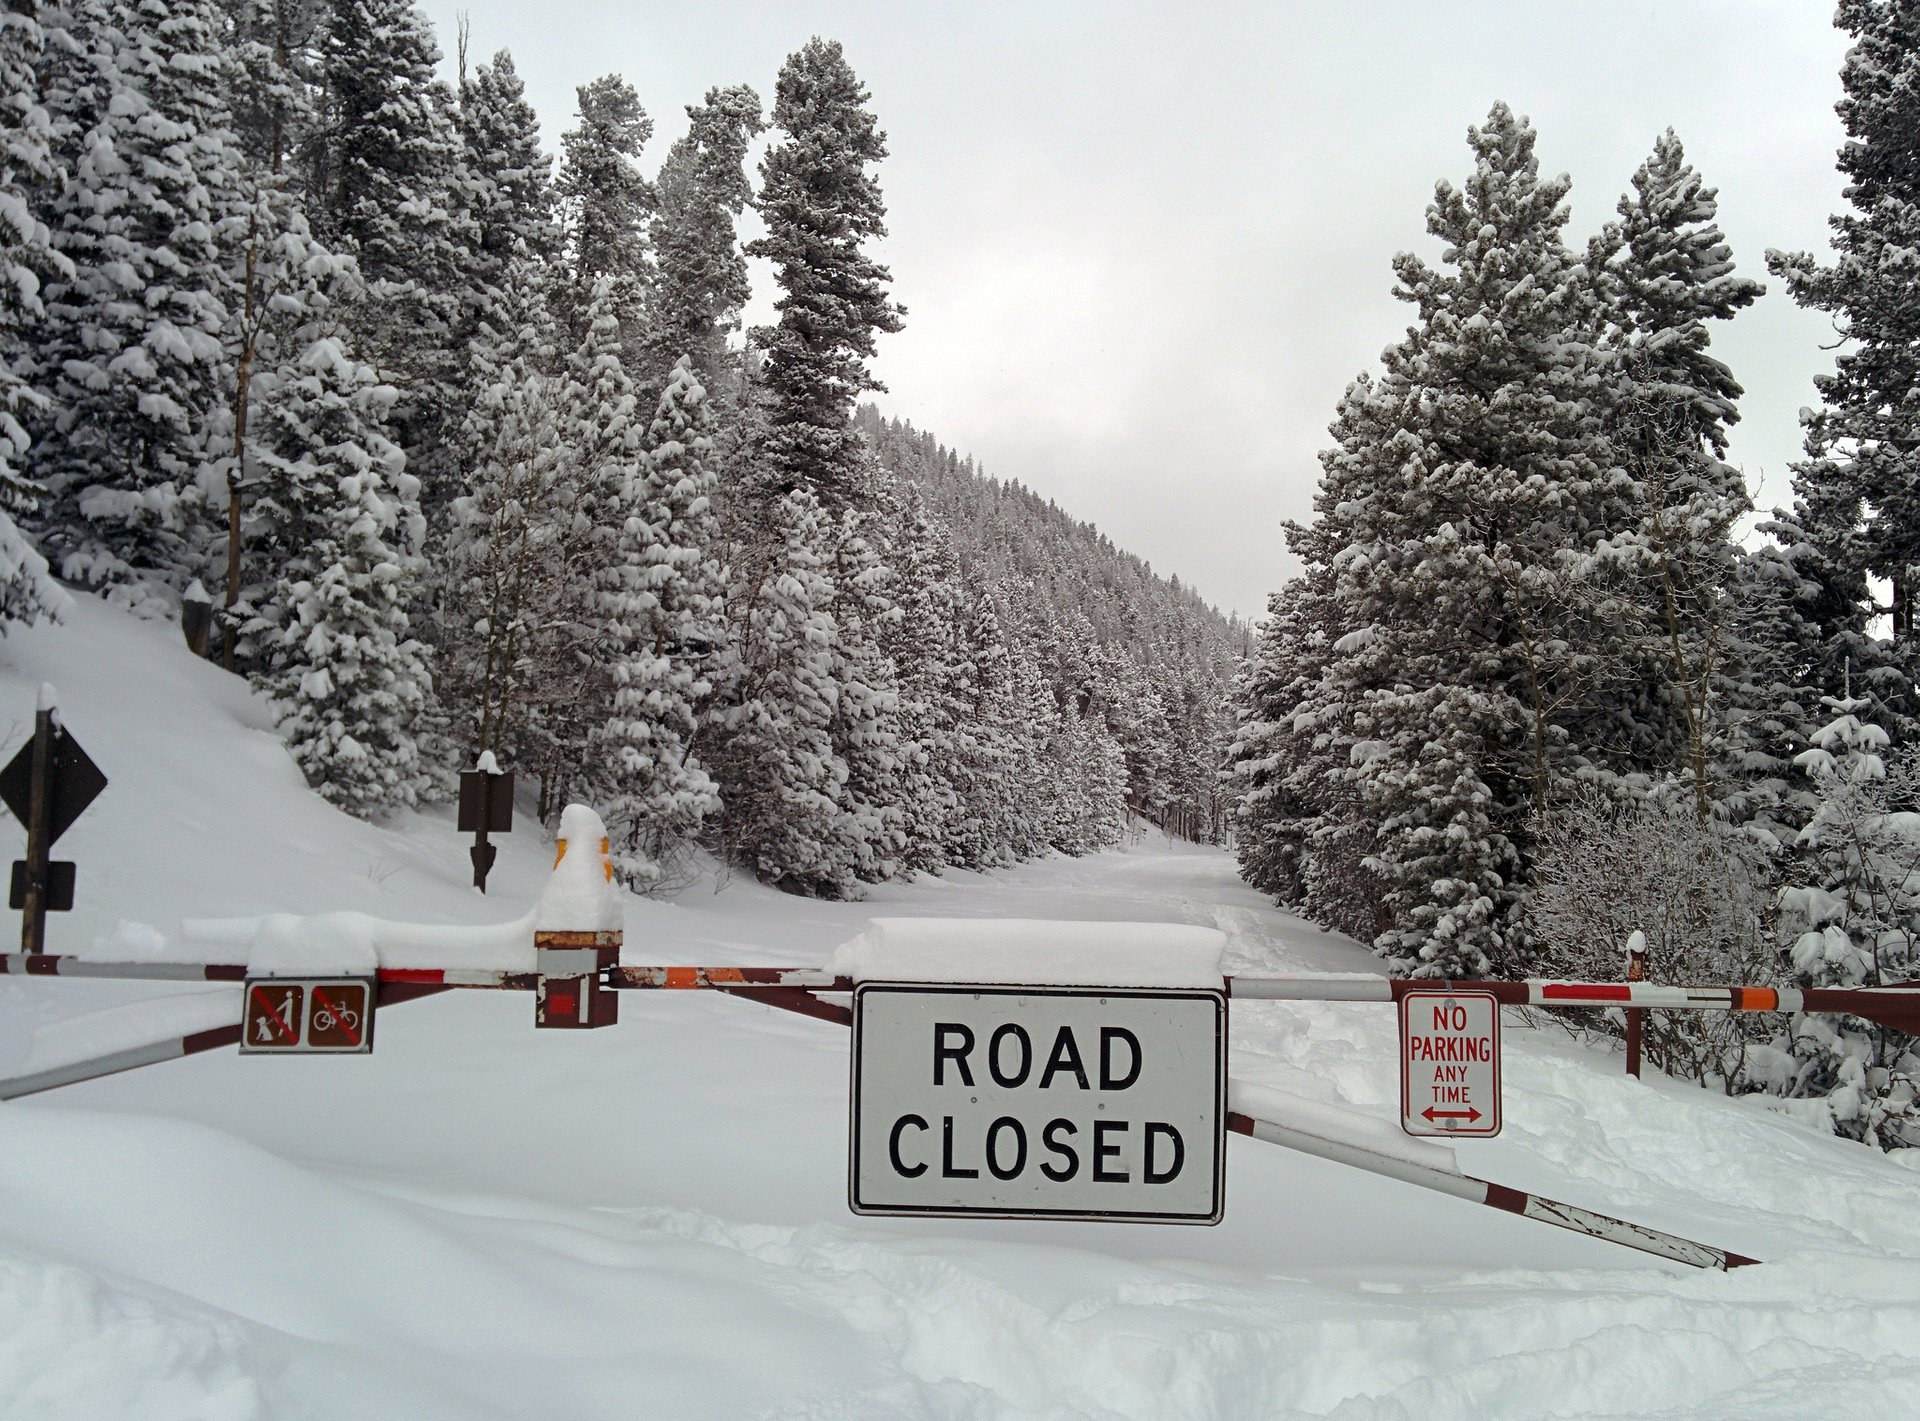 Closed Trail Ridge Road in winter 2020